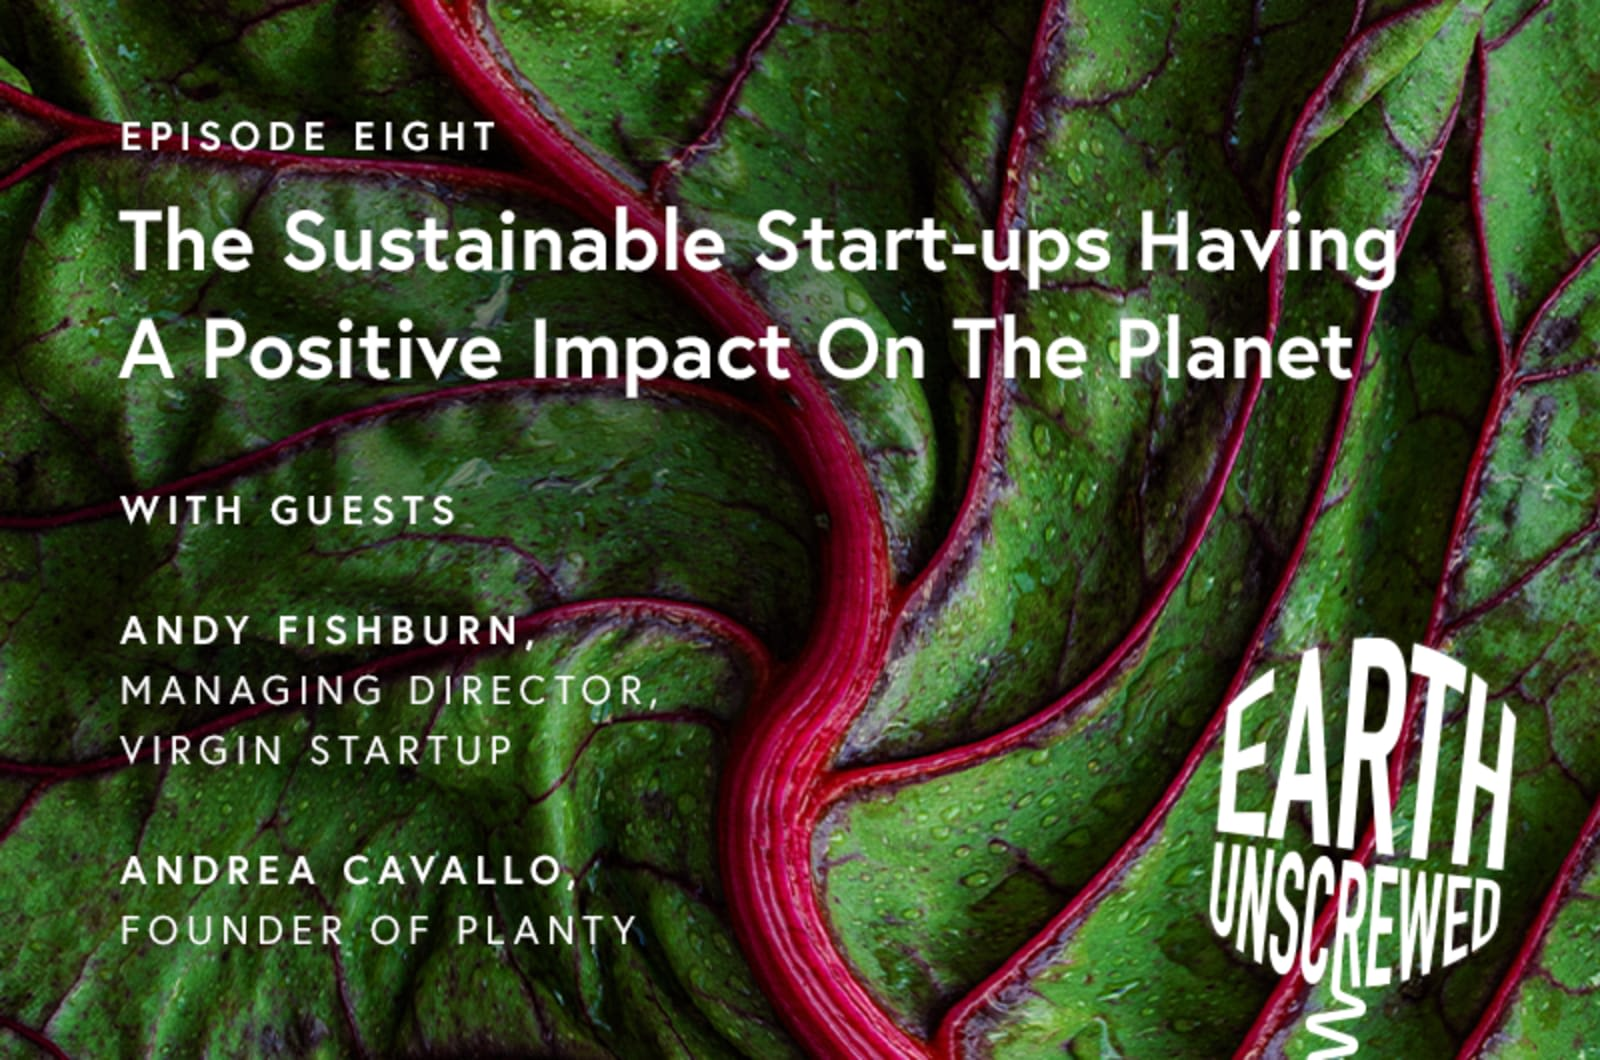 Episode Eight.  The sustainable start-ups having a positive impact on the planet.  With guesrs Andy Fishburn, Managing director Virgin Start up.  Andrea Cavallo founder of planty.  Earth Unscrewed. White text on a salad leaf background